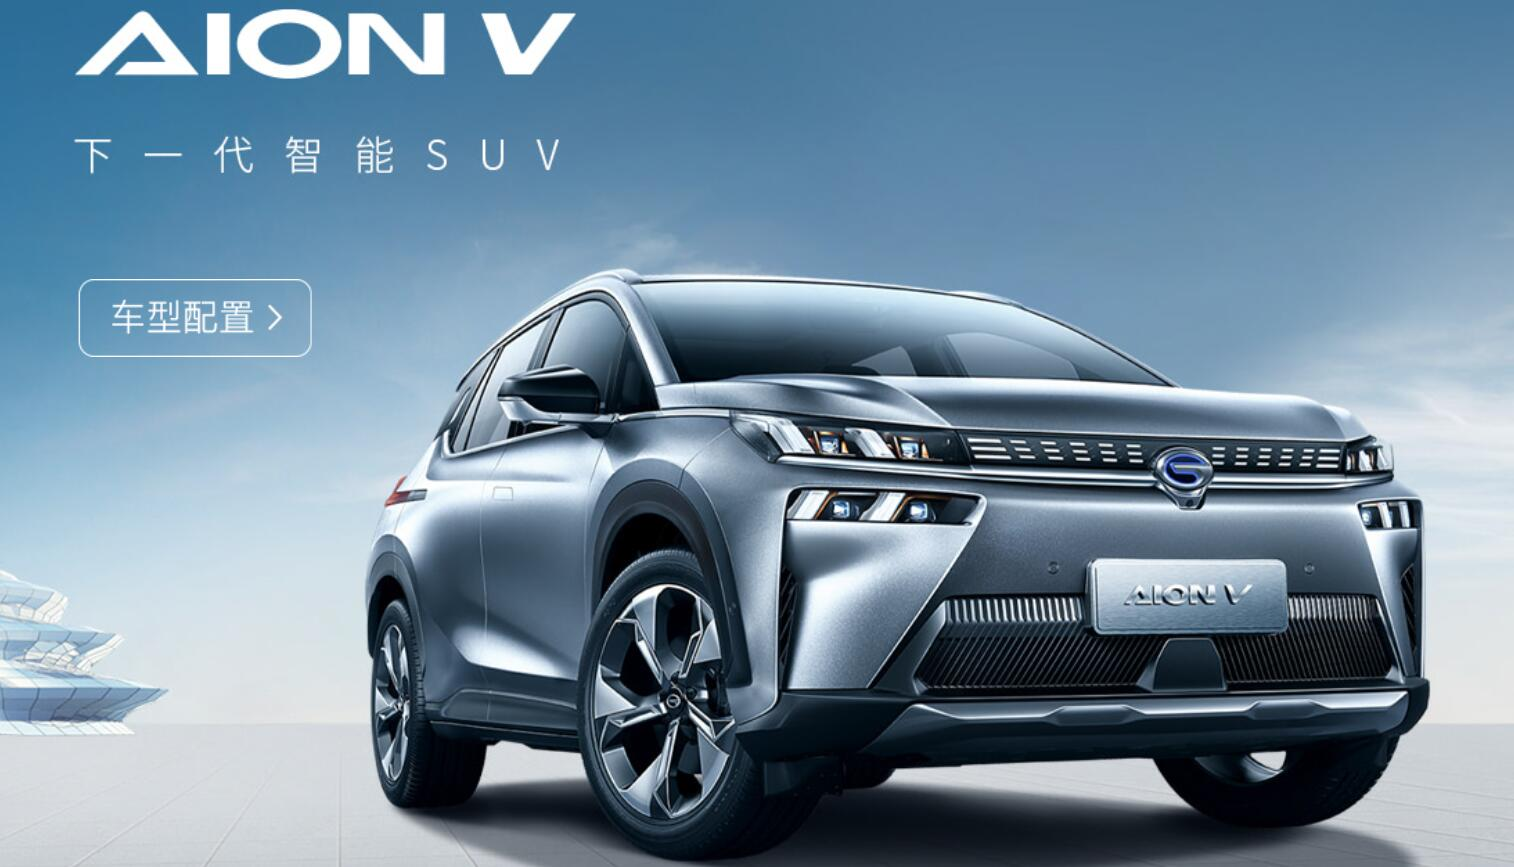 GAC Group plans to mass-produce graphene battery that boasts of charging to 80% in 8 mins in Sept-CnEVPost